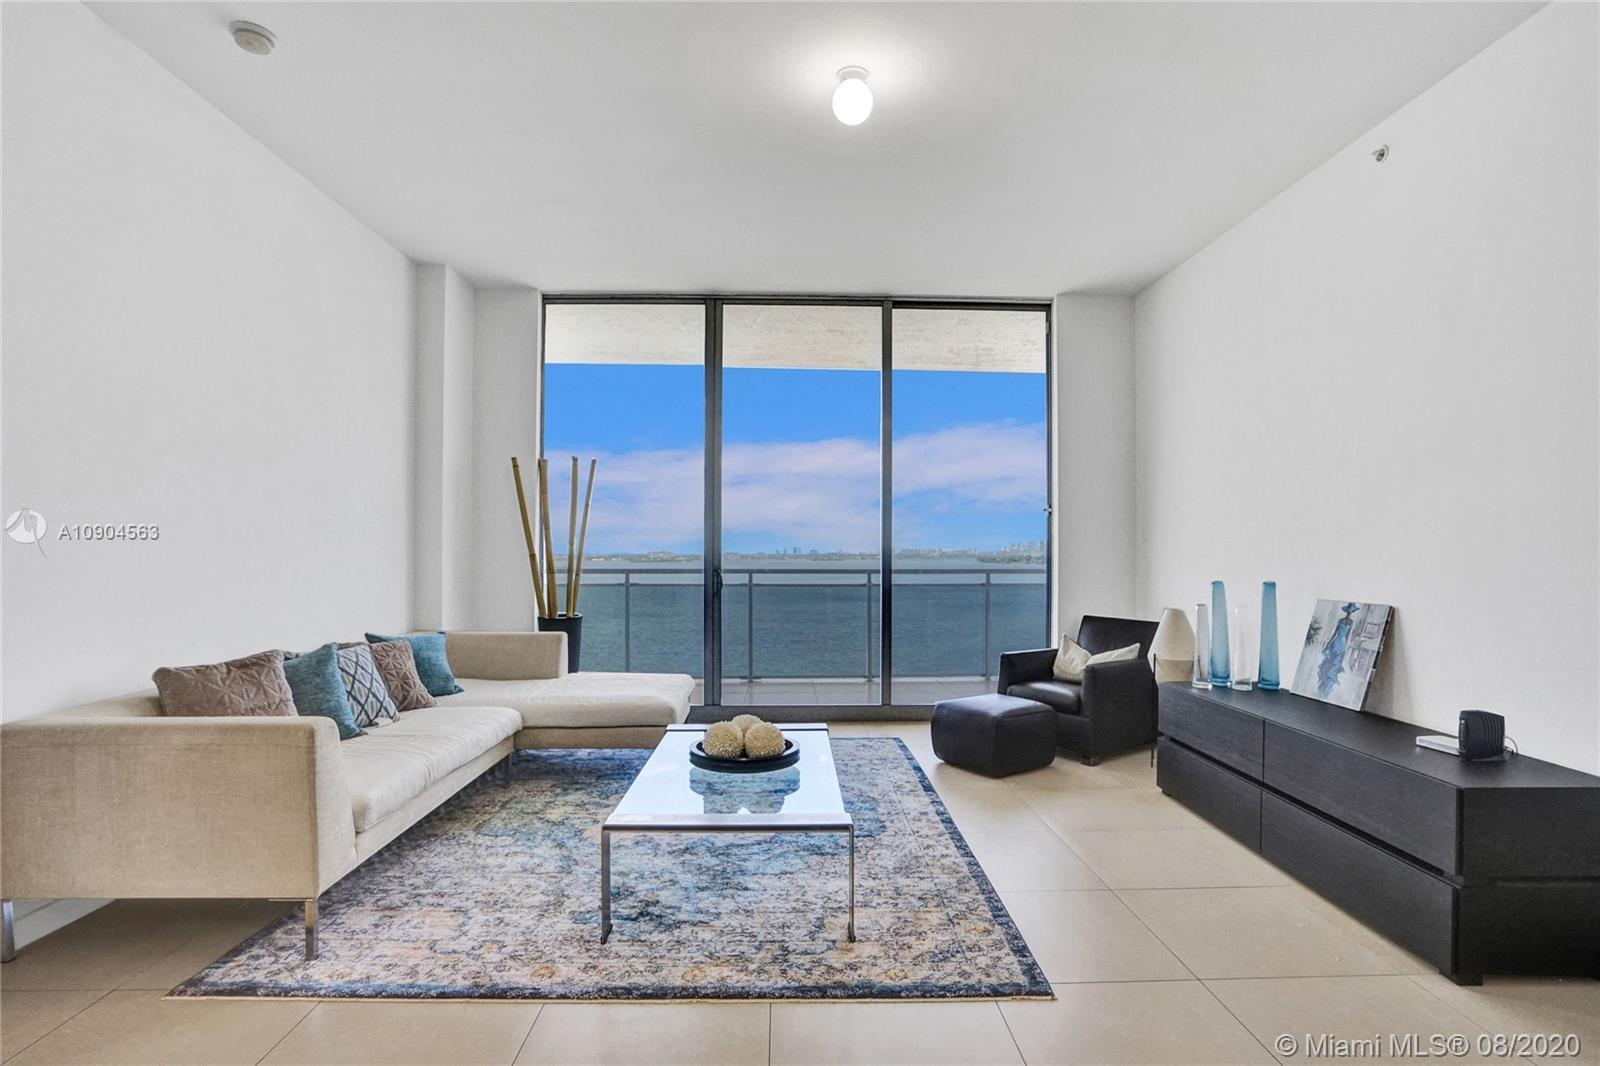 SPACIOUS AND BEAUTIFUL CONDO OFFERING ENDLESS unobstructed bay, OCEAN, city views FROM EVERY ROOM. b